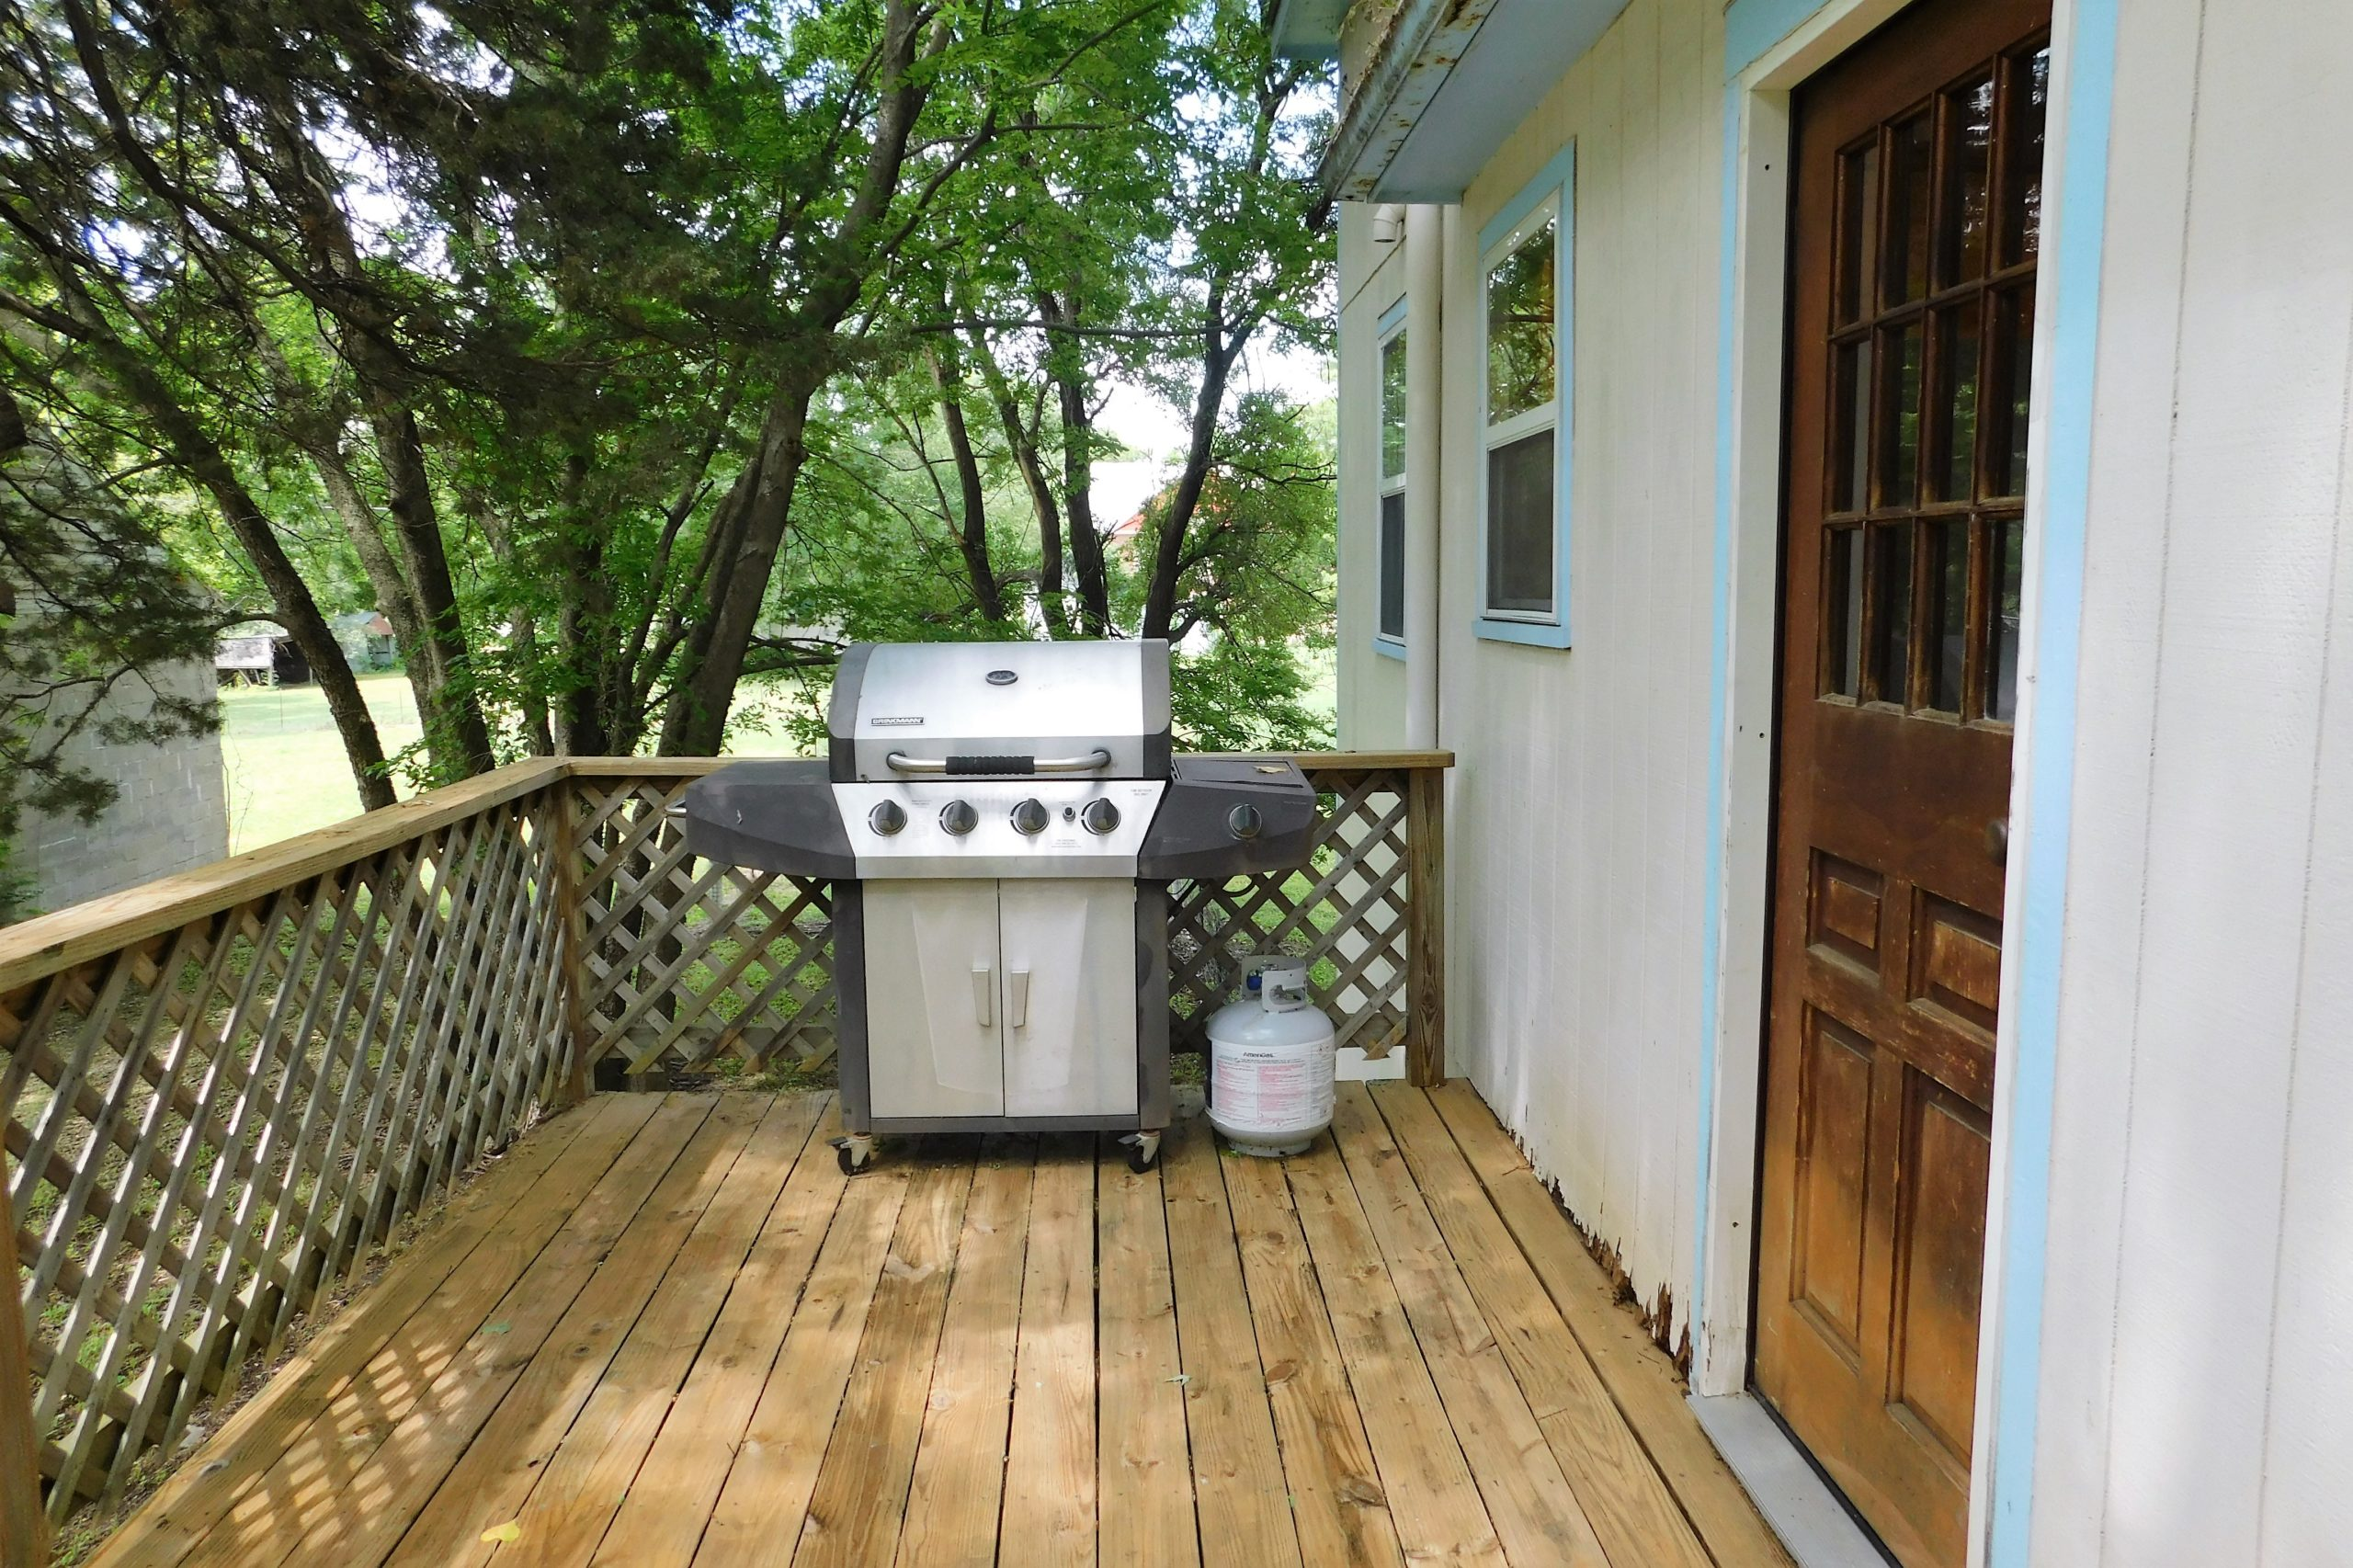 Shaded Deck with Gas Grill and Accessories